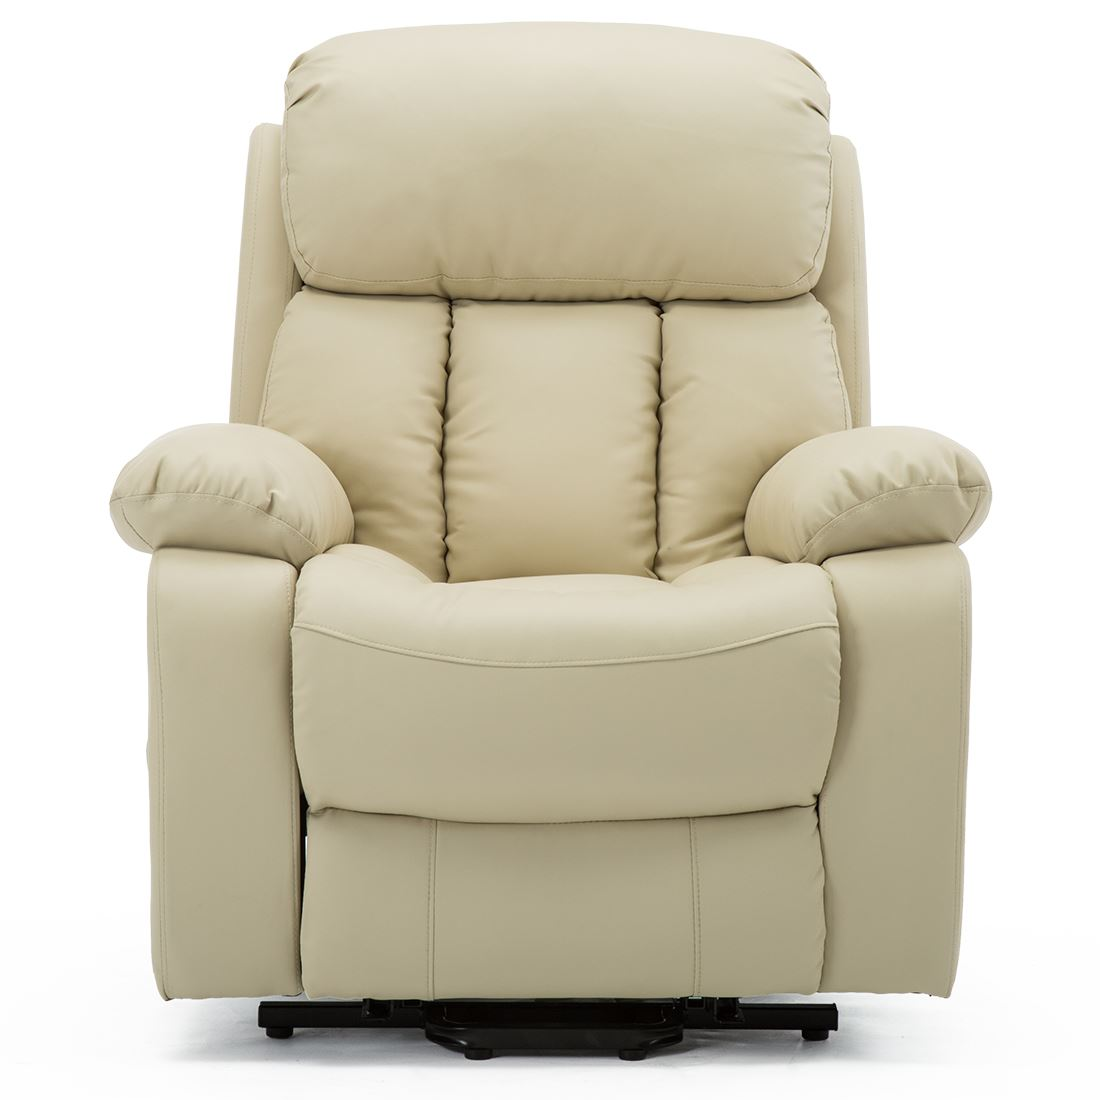 CHESTER-ELECTRIC-RISE-LEATHER-RECLINER-POWER-ARMCHAIR-HEATED-MASSAGE-SOFA-CHAIR thumbnail 20